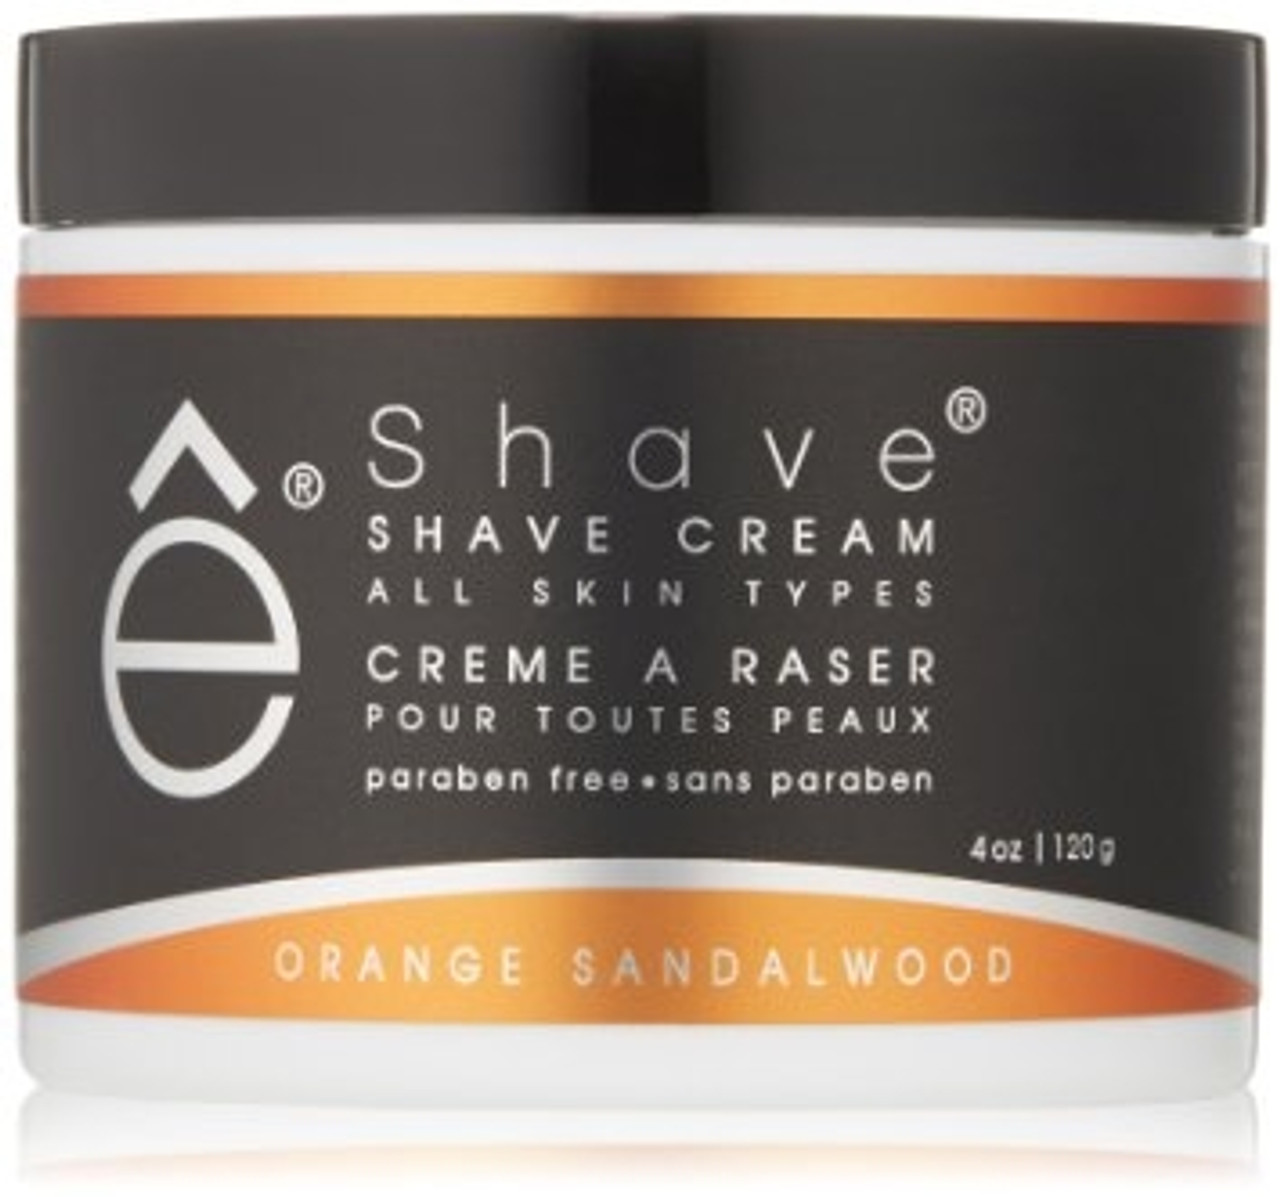 eShave Shave Cream - Orange Sandalwood